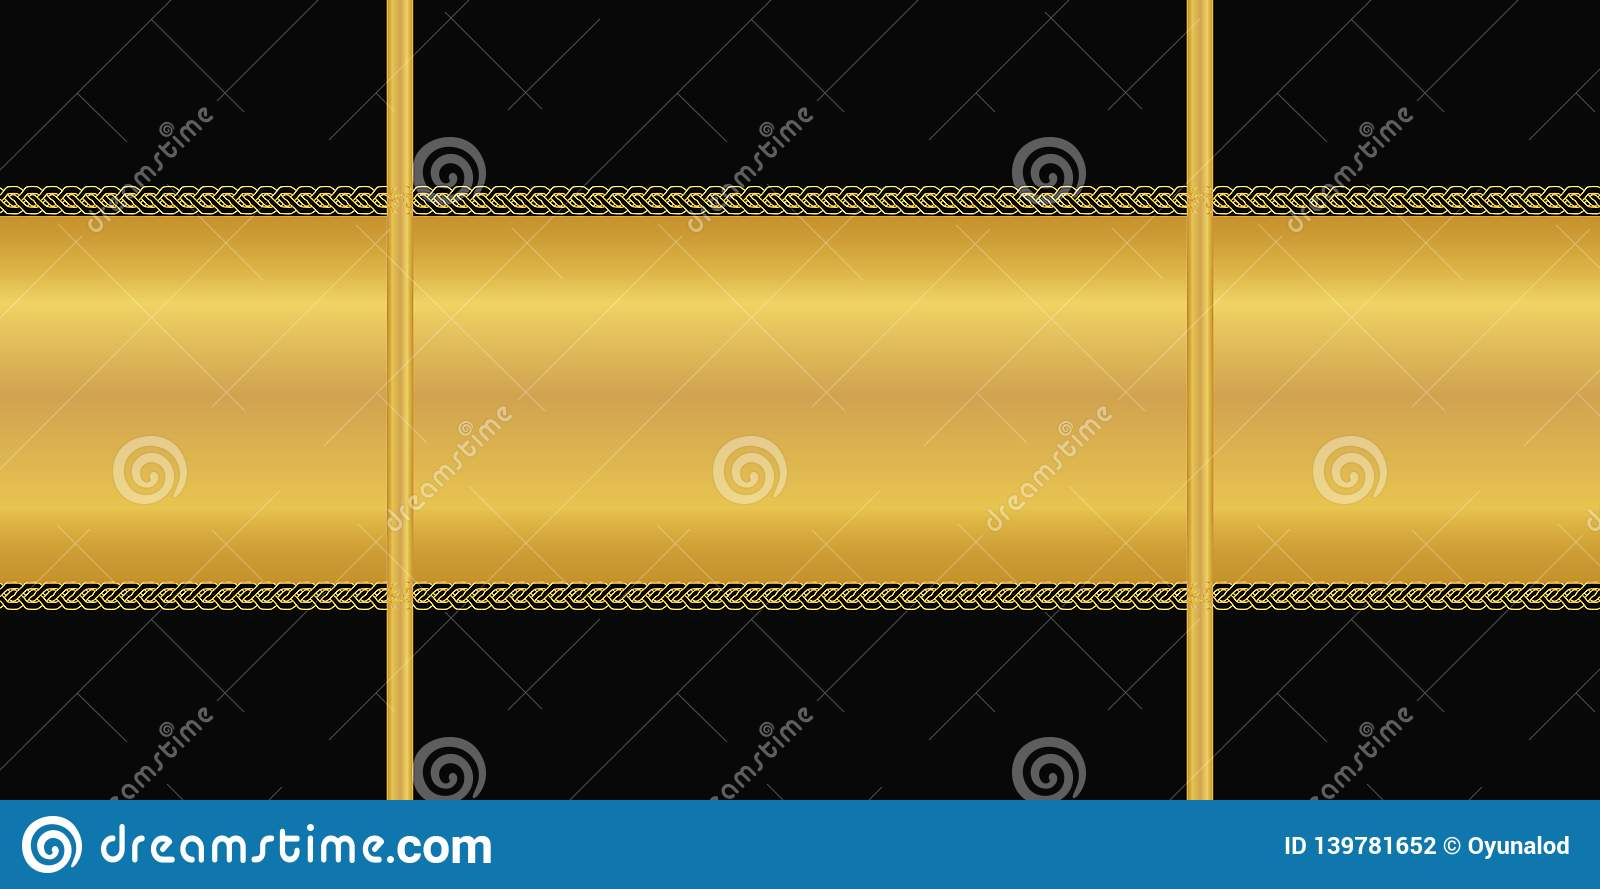 Vector seamless pattern. Horizontal golden stripe, Art deco ornament on black background. Wallpaper, wrapping paper, textile print